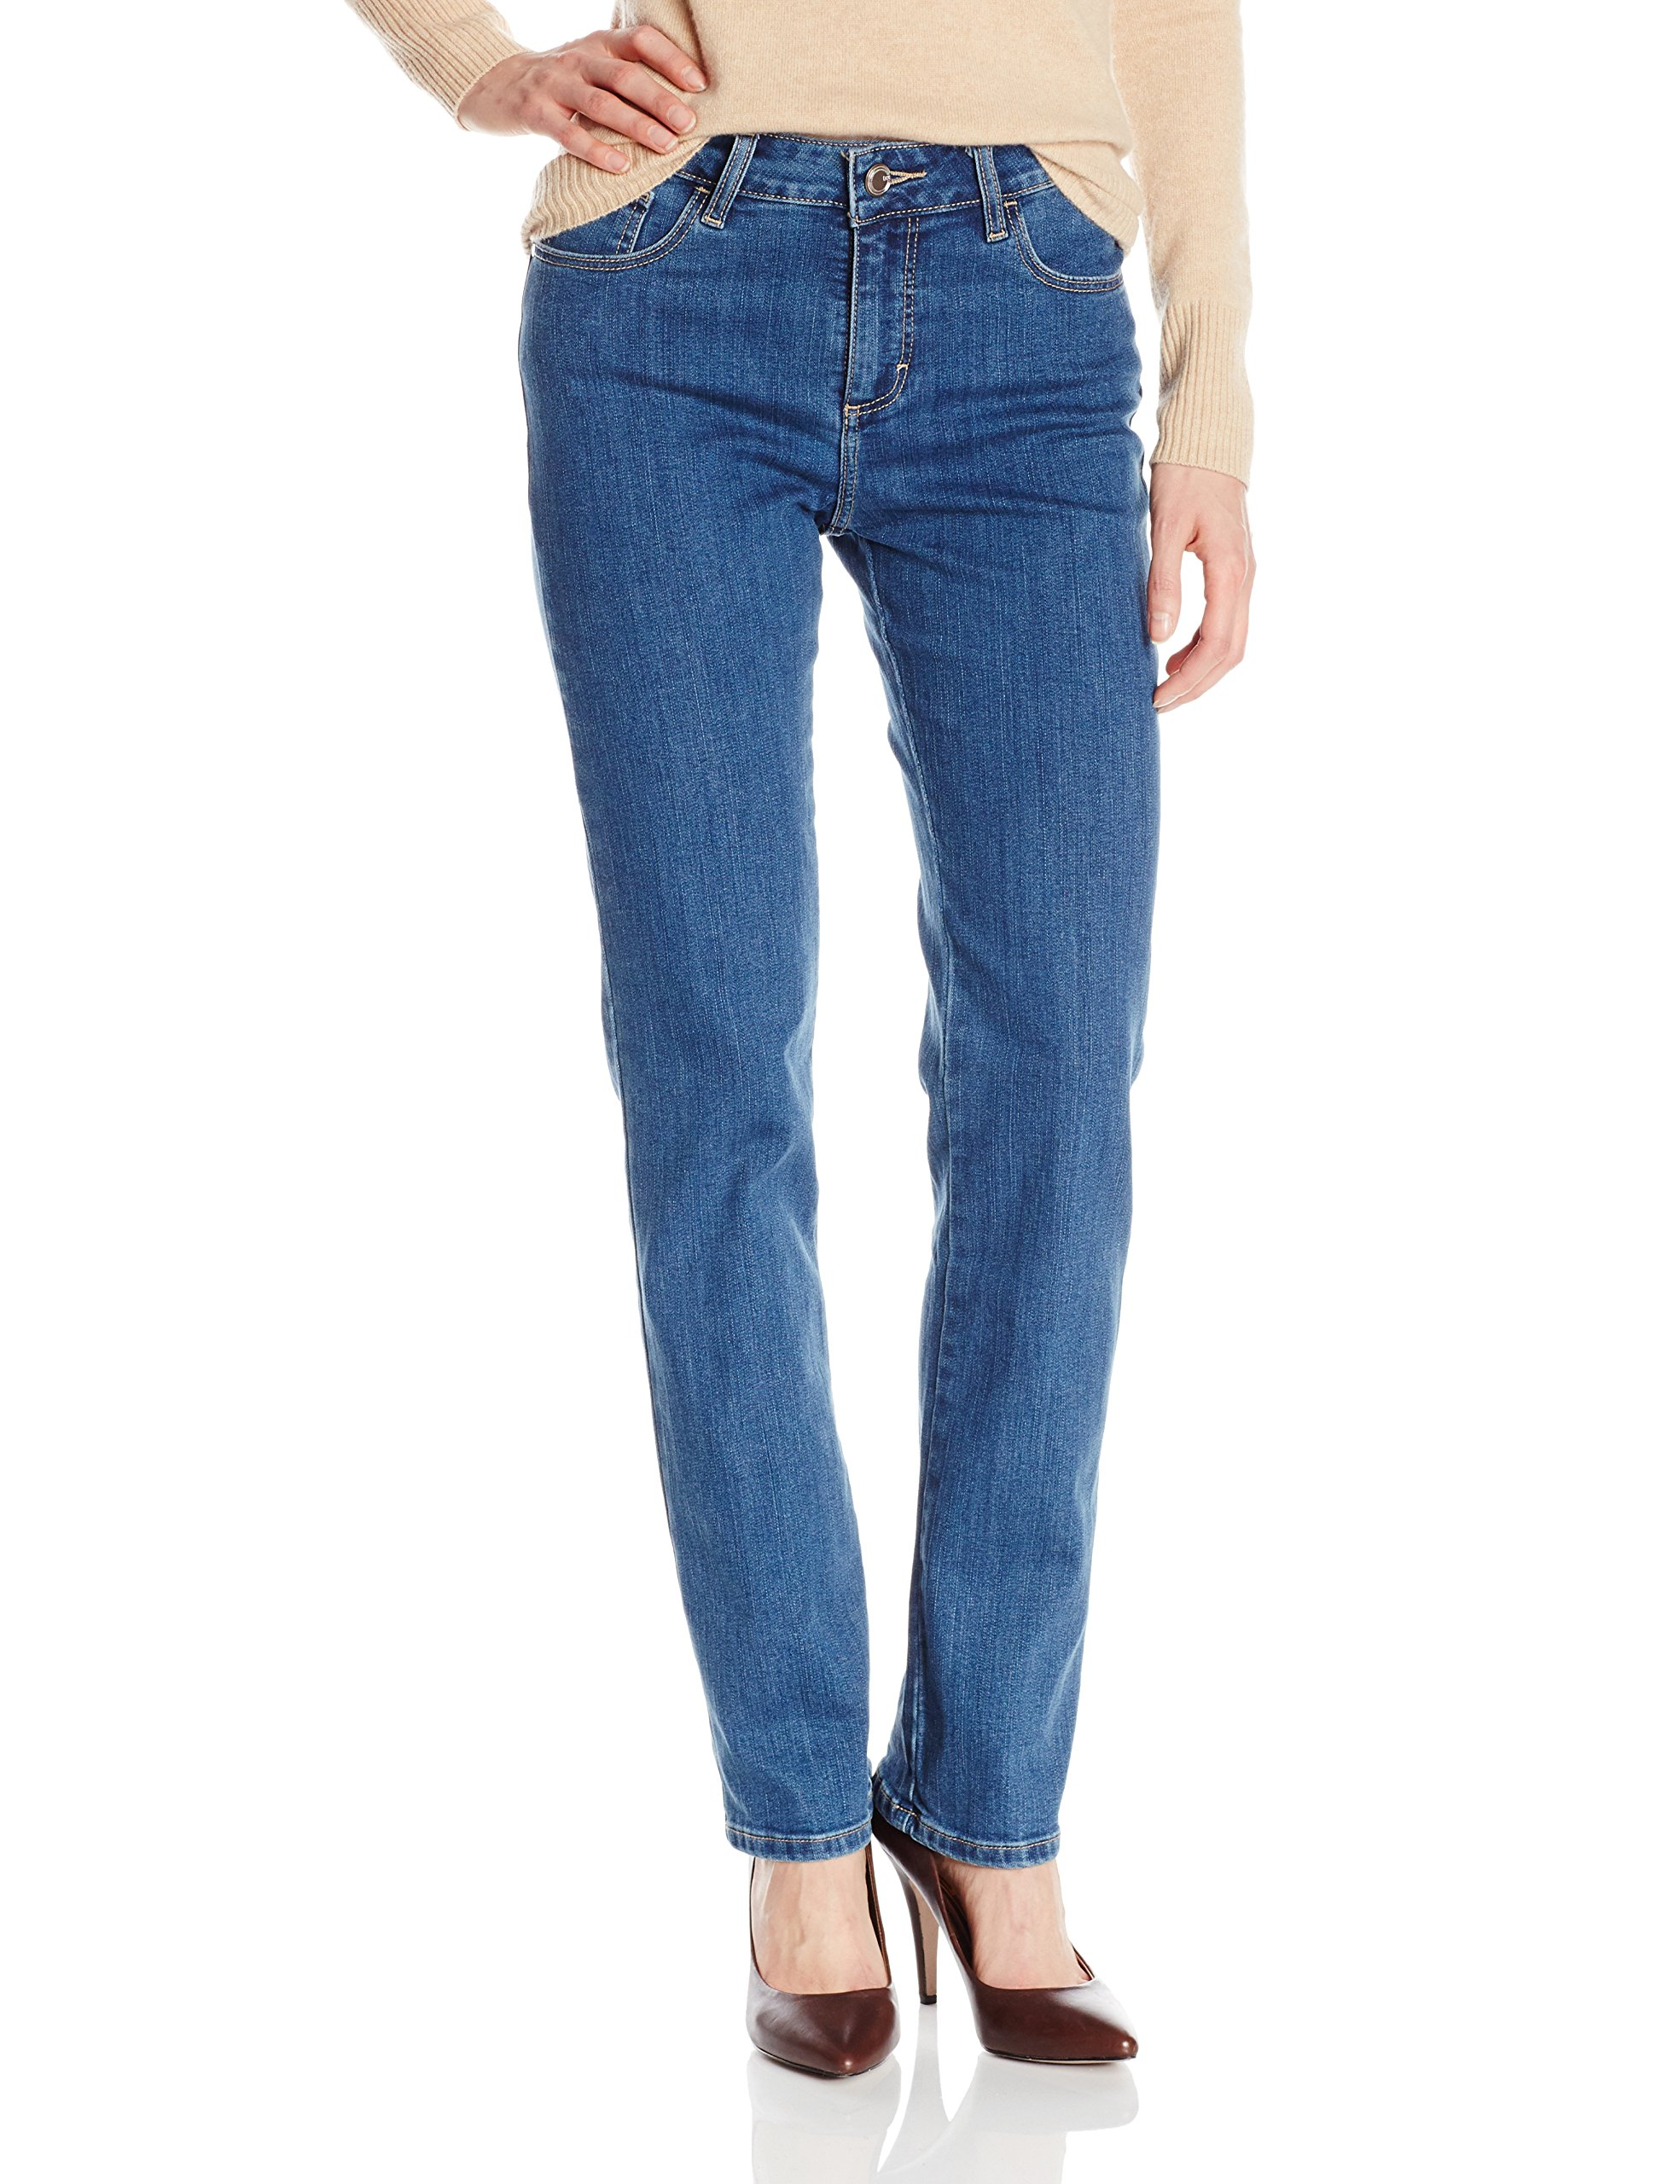 LEE Women's Instantly Slims Classic Relaxed Fit Monroe Straight Leg Jean, Seattle, 14 Short